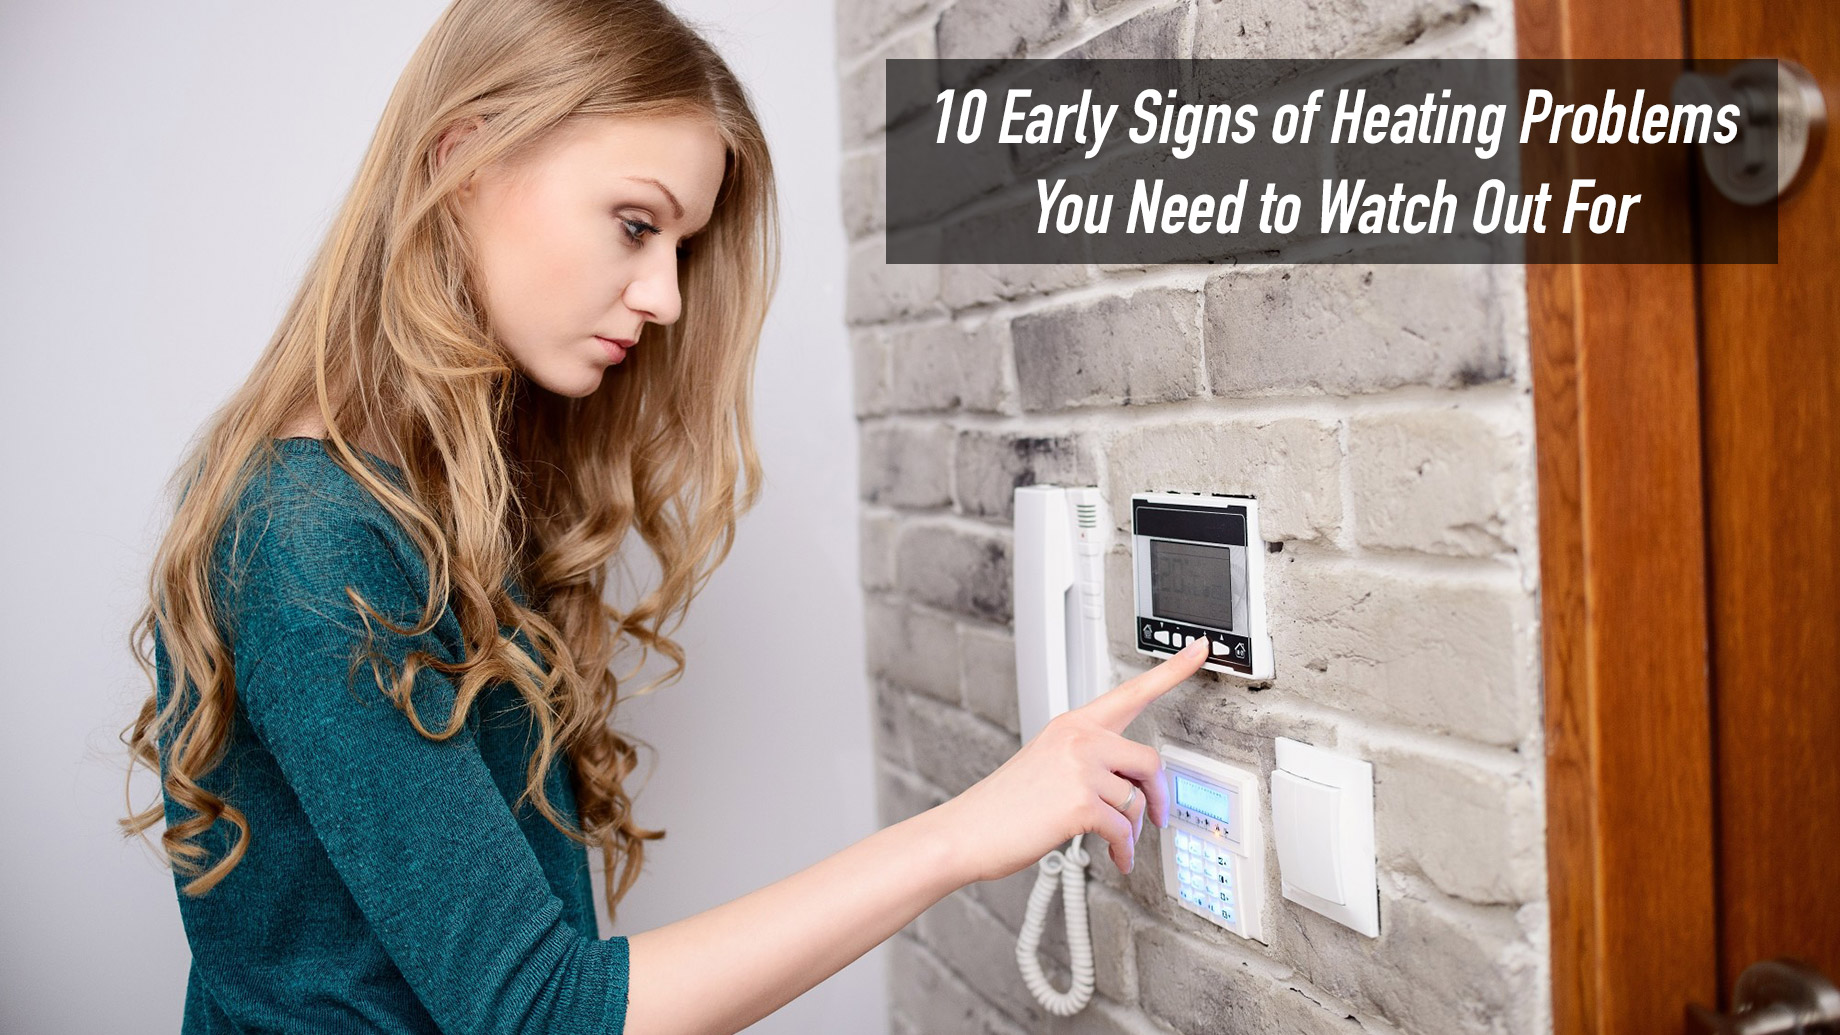 10 Early Signs of Heating Problems You Need to Watch Out For